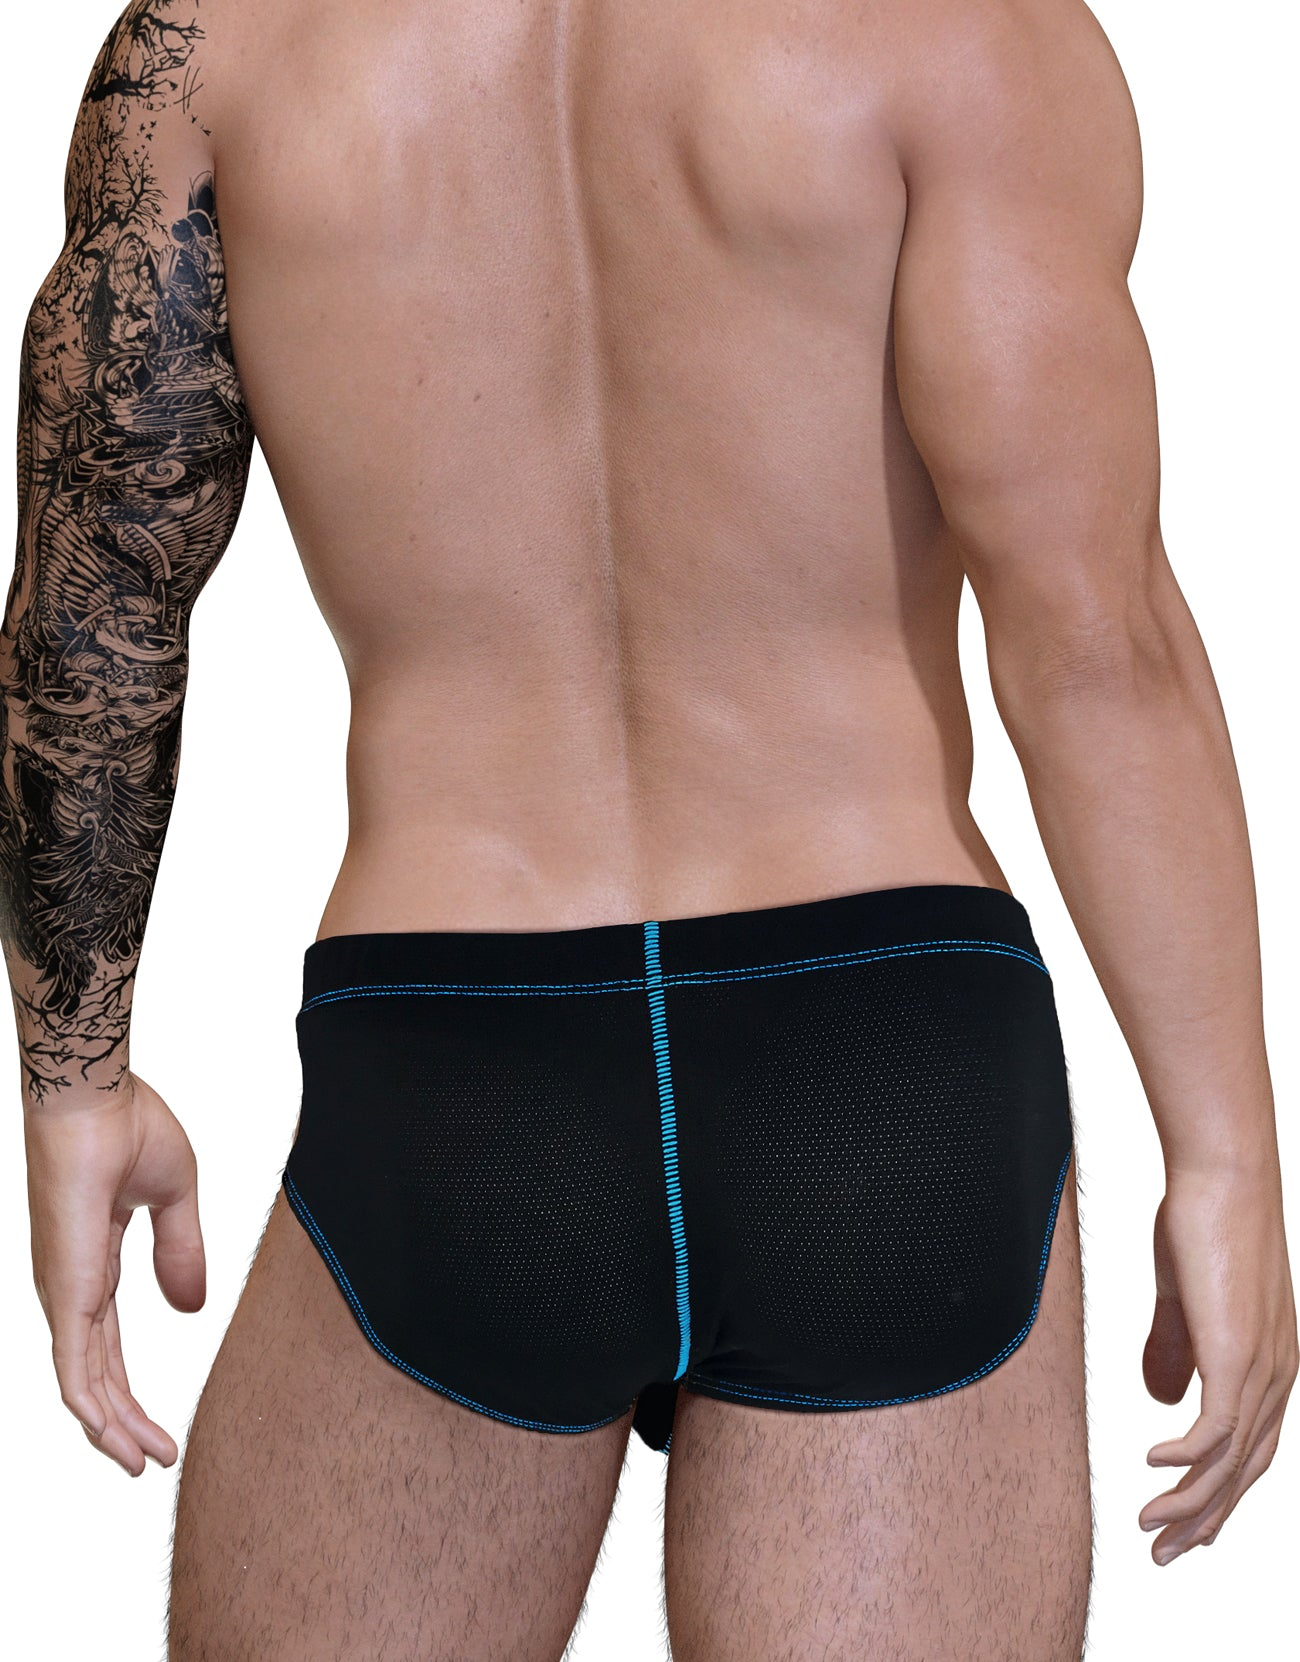 Stitch Big Boy Pouch Brief - Blue - Big Penis Underwear, WildmanT - WildmanT